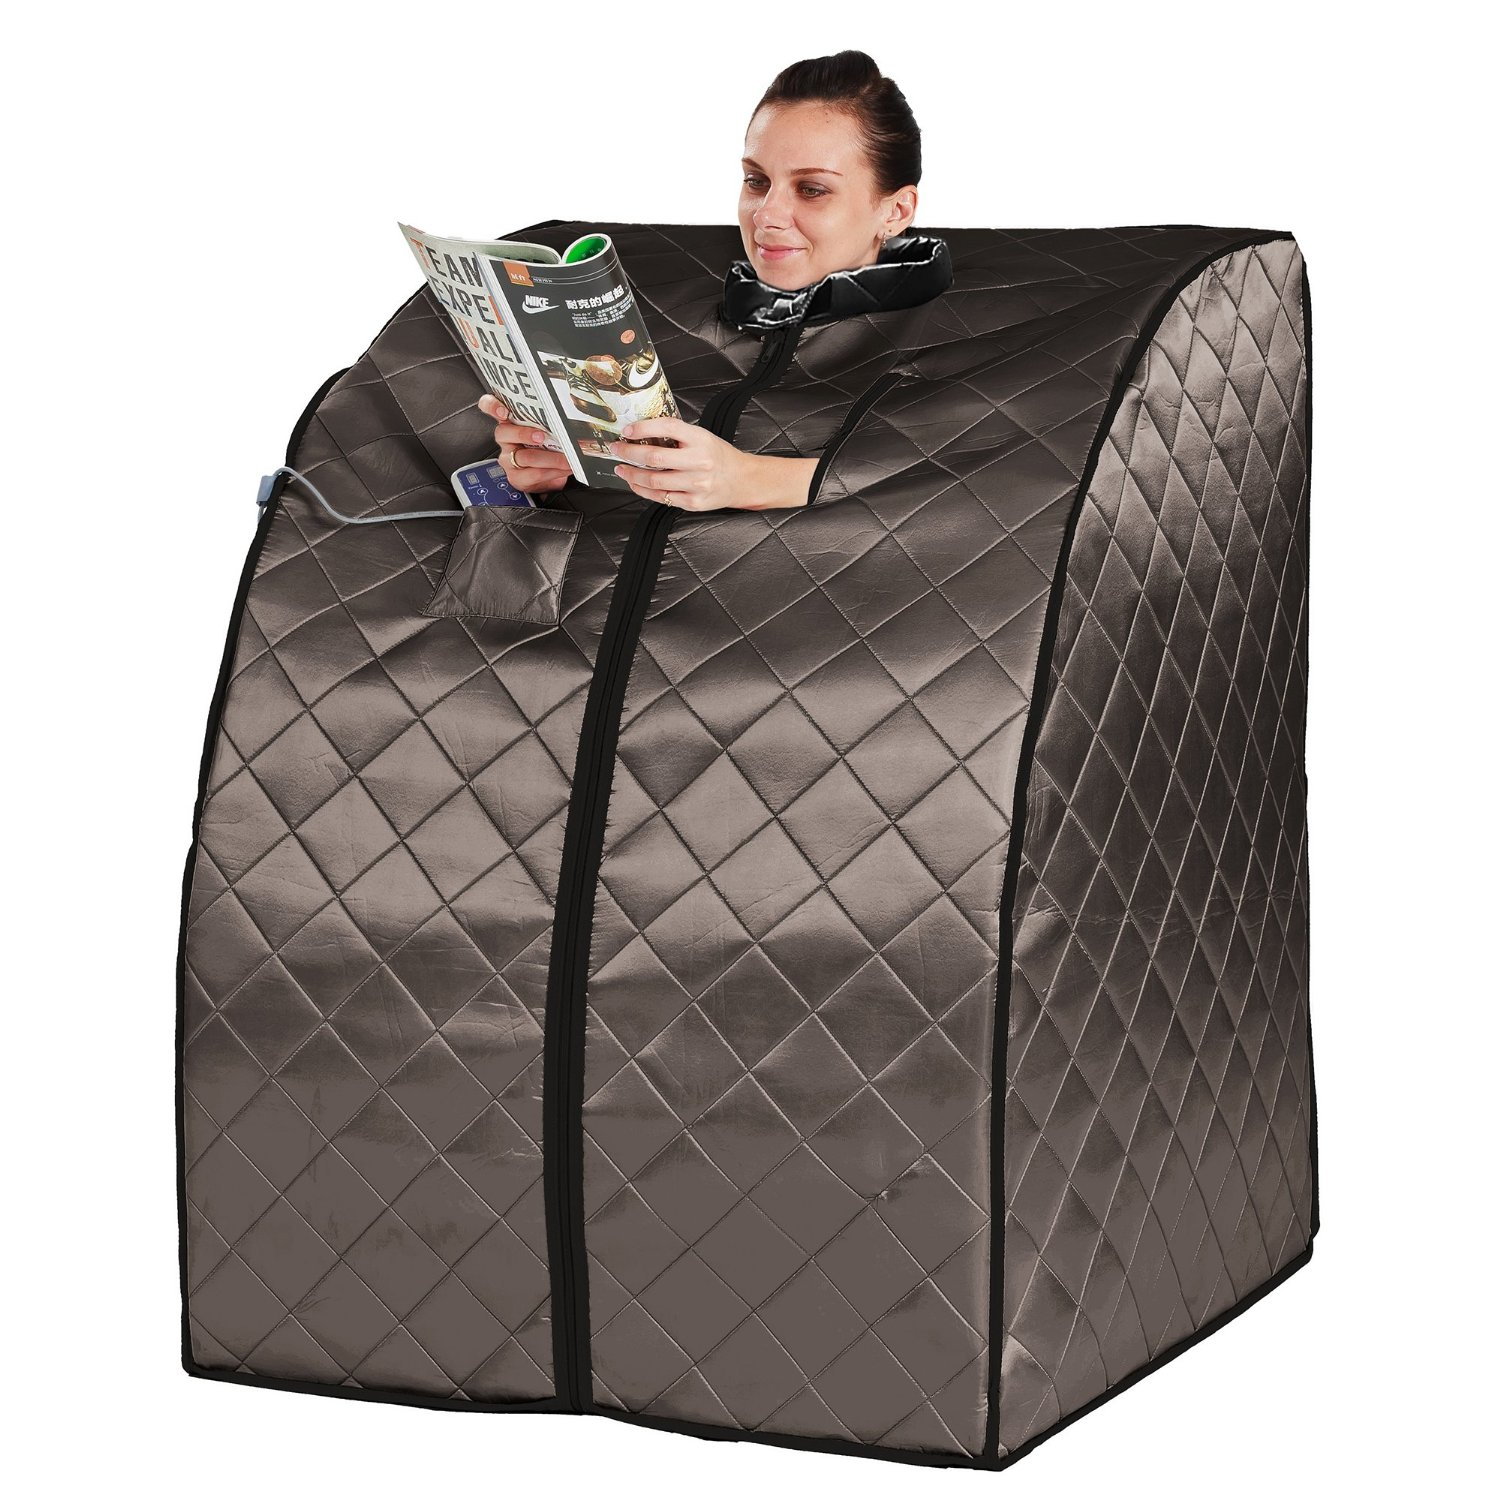 A picture of a portable, personal sauna